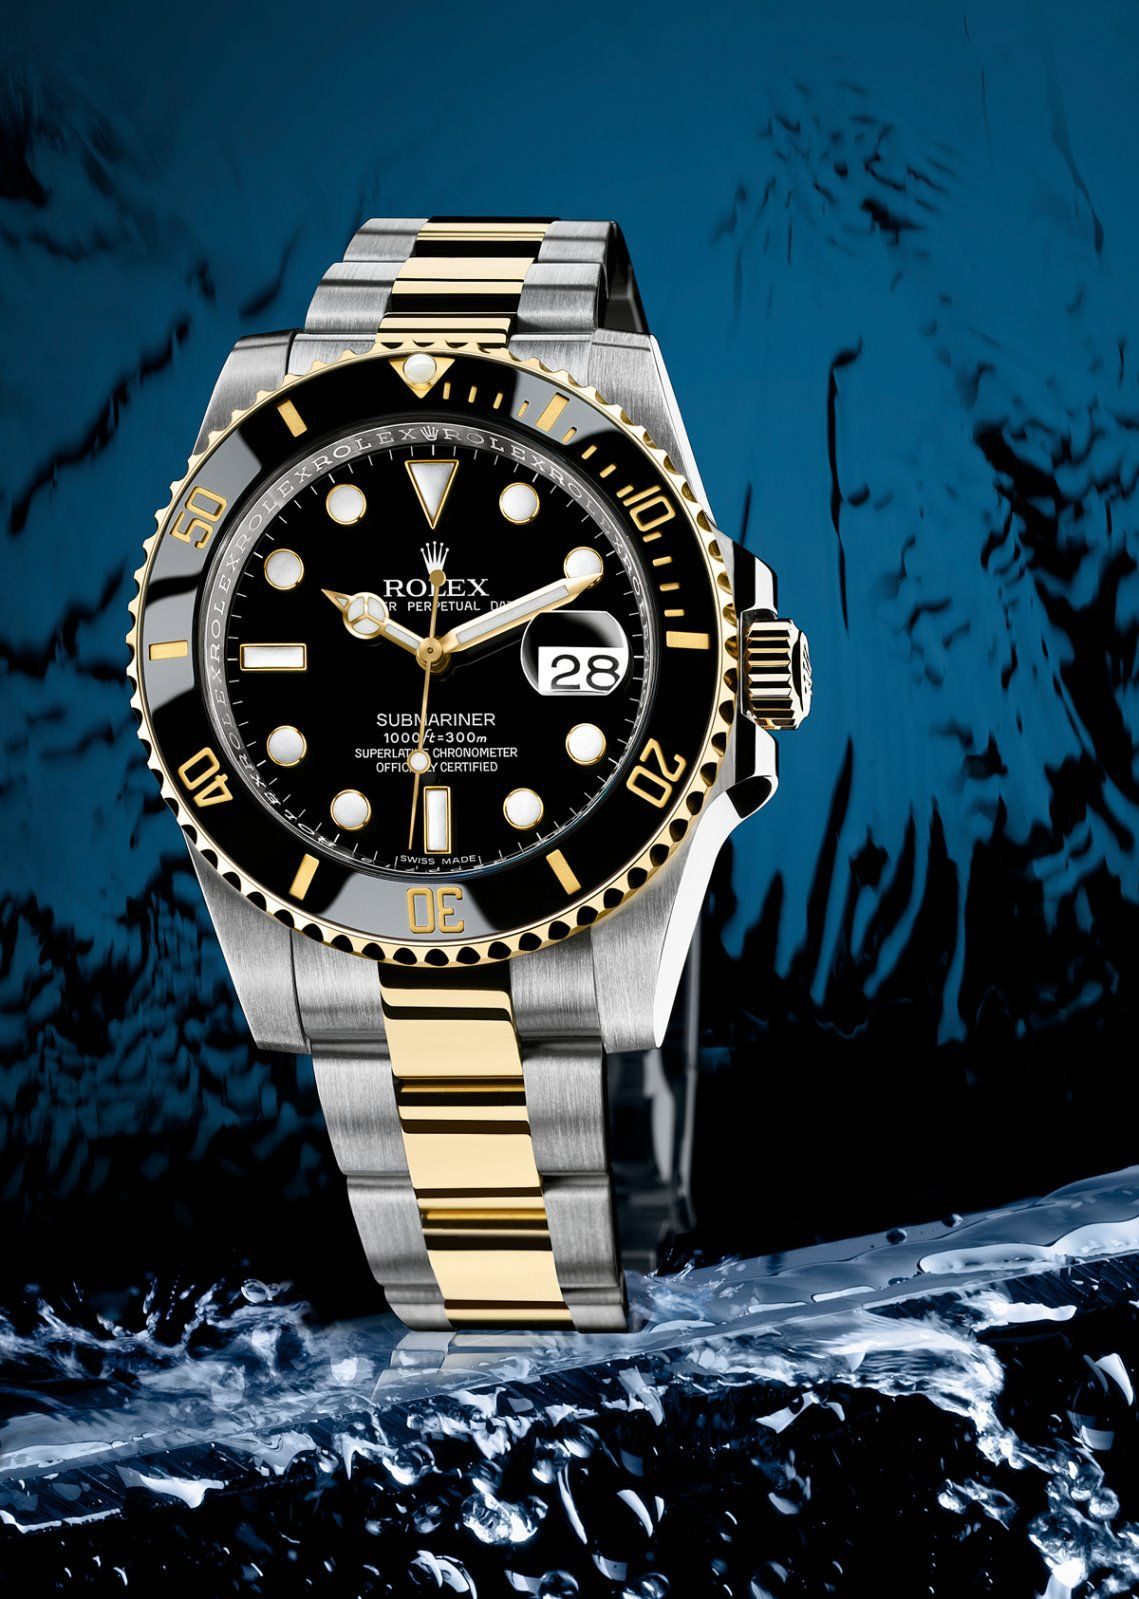 Rolex Submariner Wallpapers Top Free Rolex Submariner